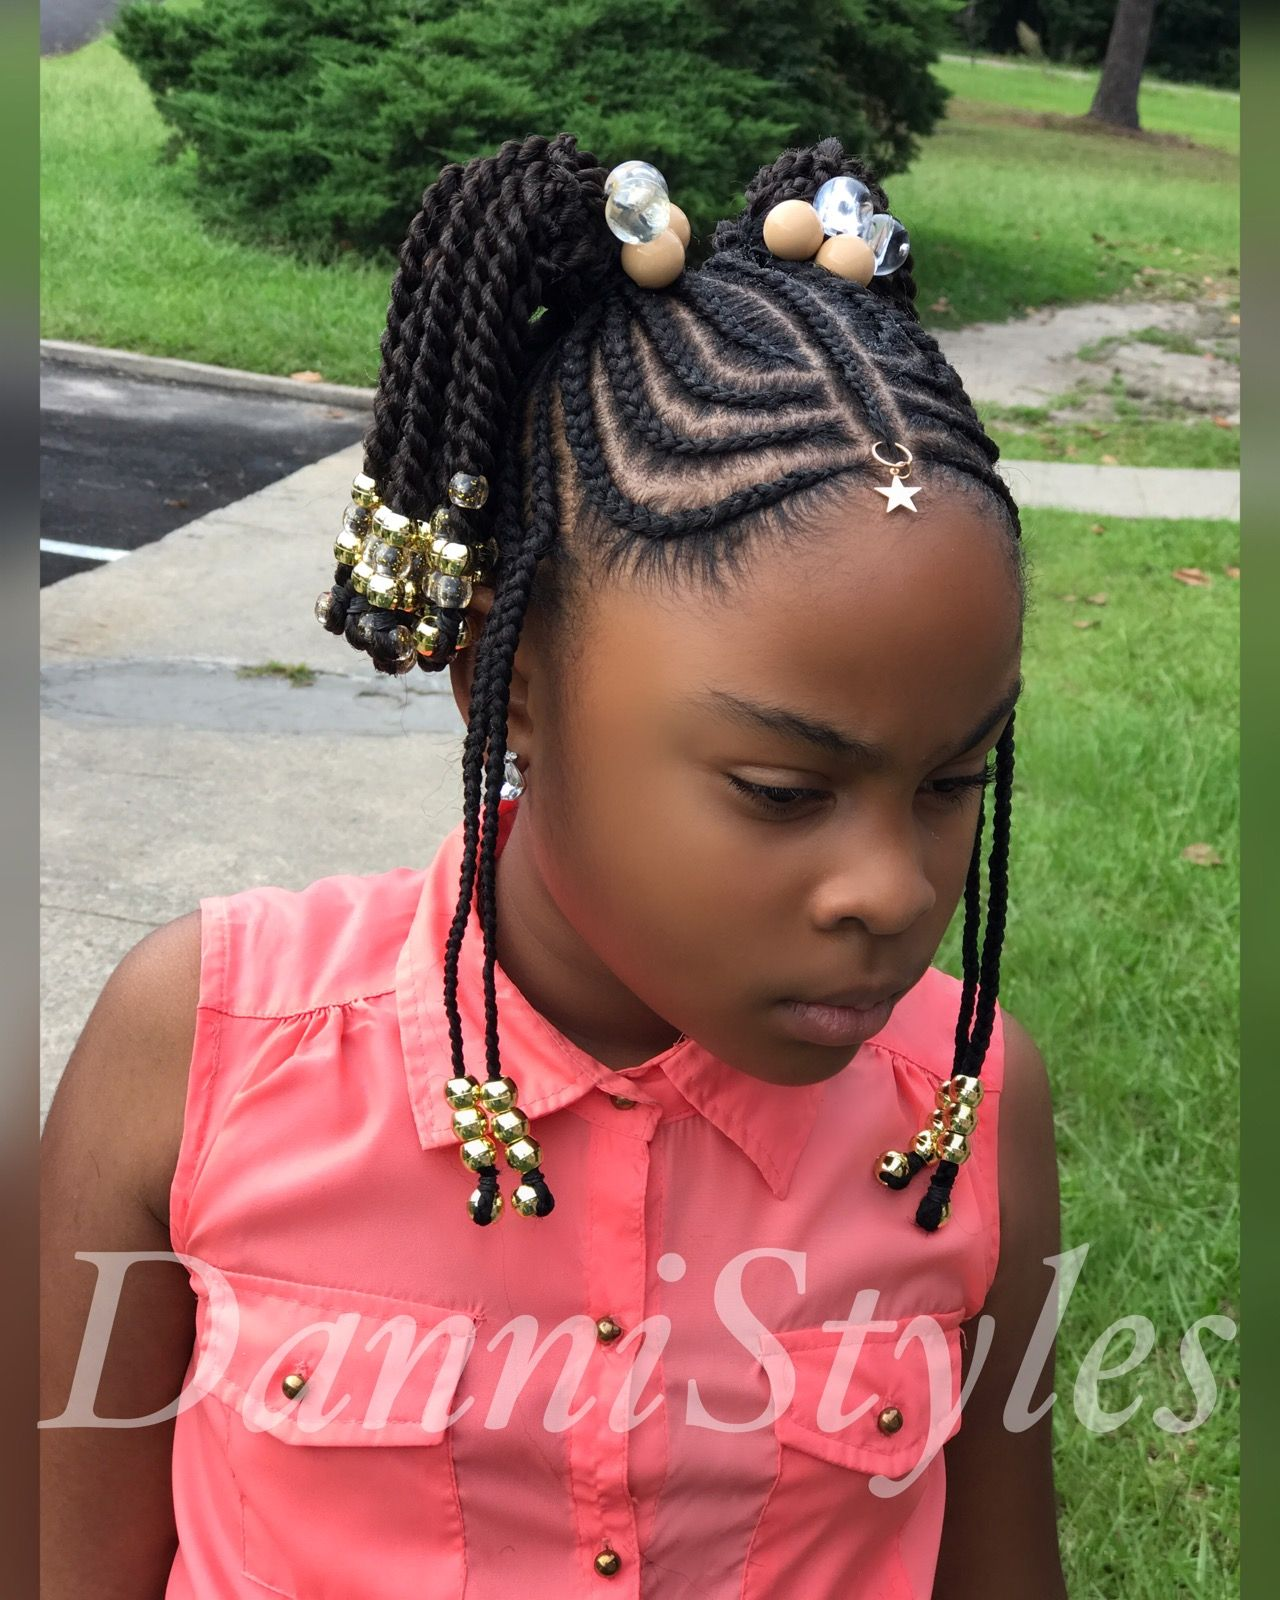 tribal braids kids #dannistyles